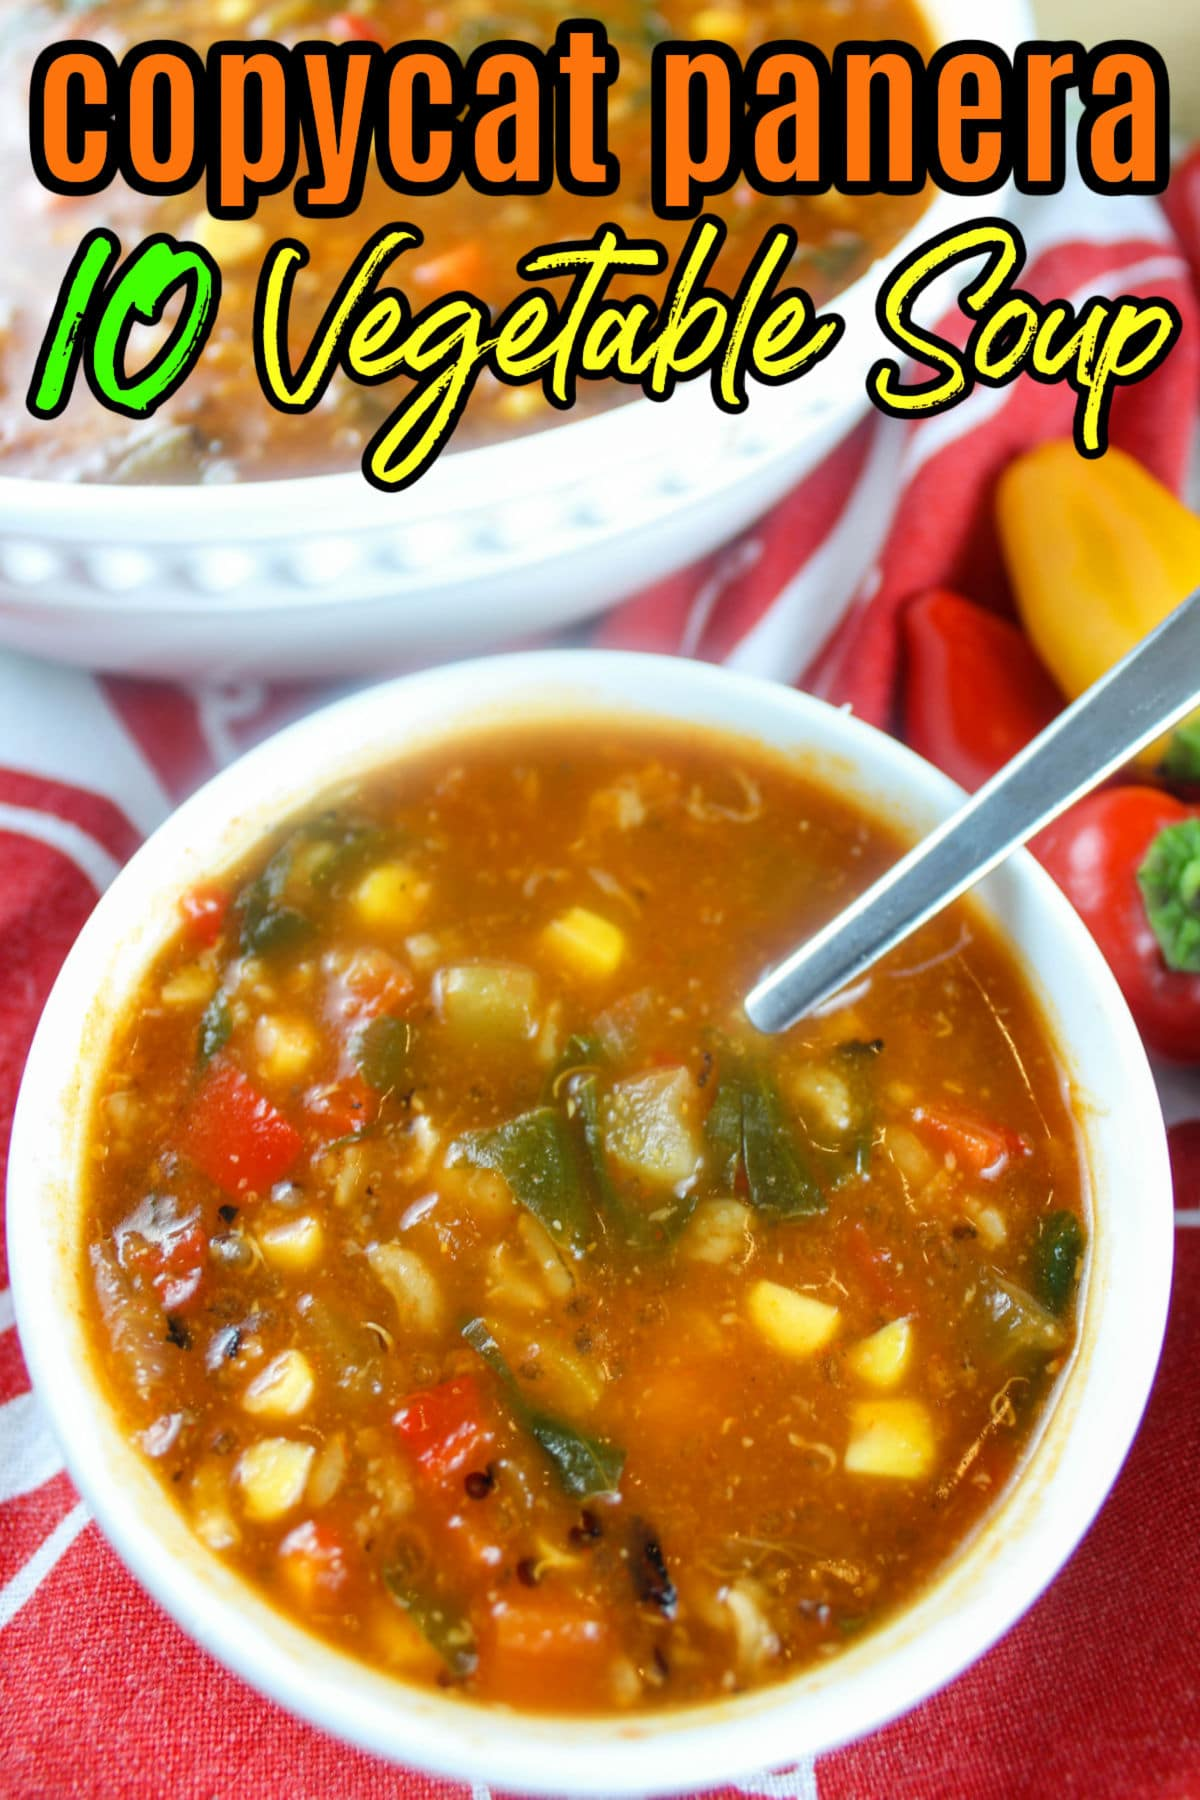 Panera's Ten Vegetable Soup is obviously LOADED with vegetables - 10 to be exact - but it's also packed with nutrition and flavor! This copycat recipe has all the healthy goodness you've come to expect from Panera - and I think - it even tastes a little better! ;-)  via @foodhussy